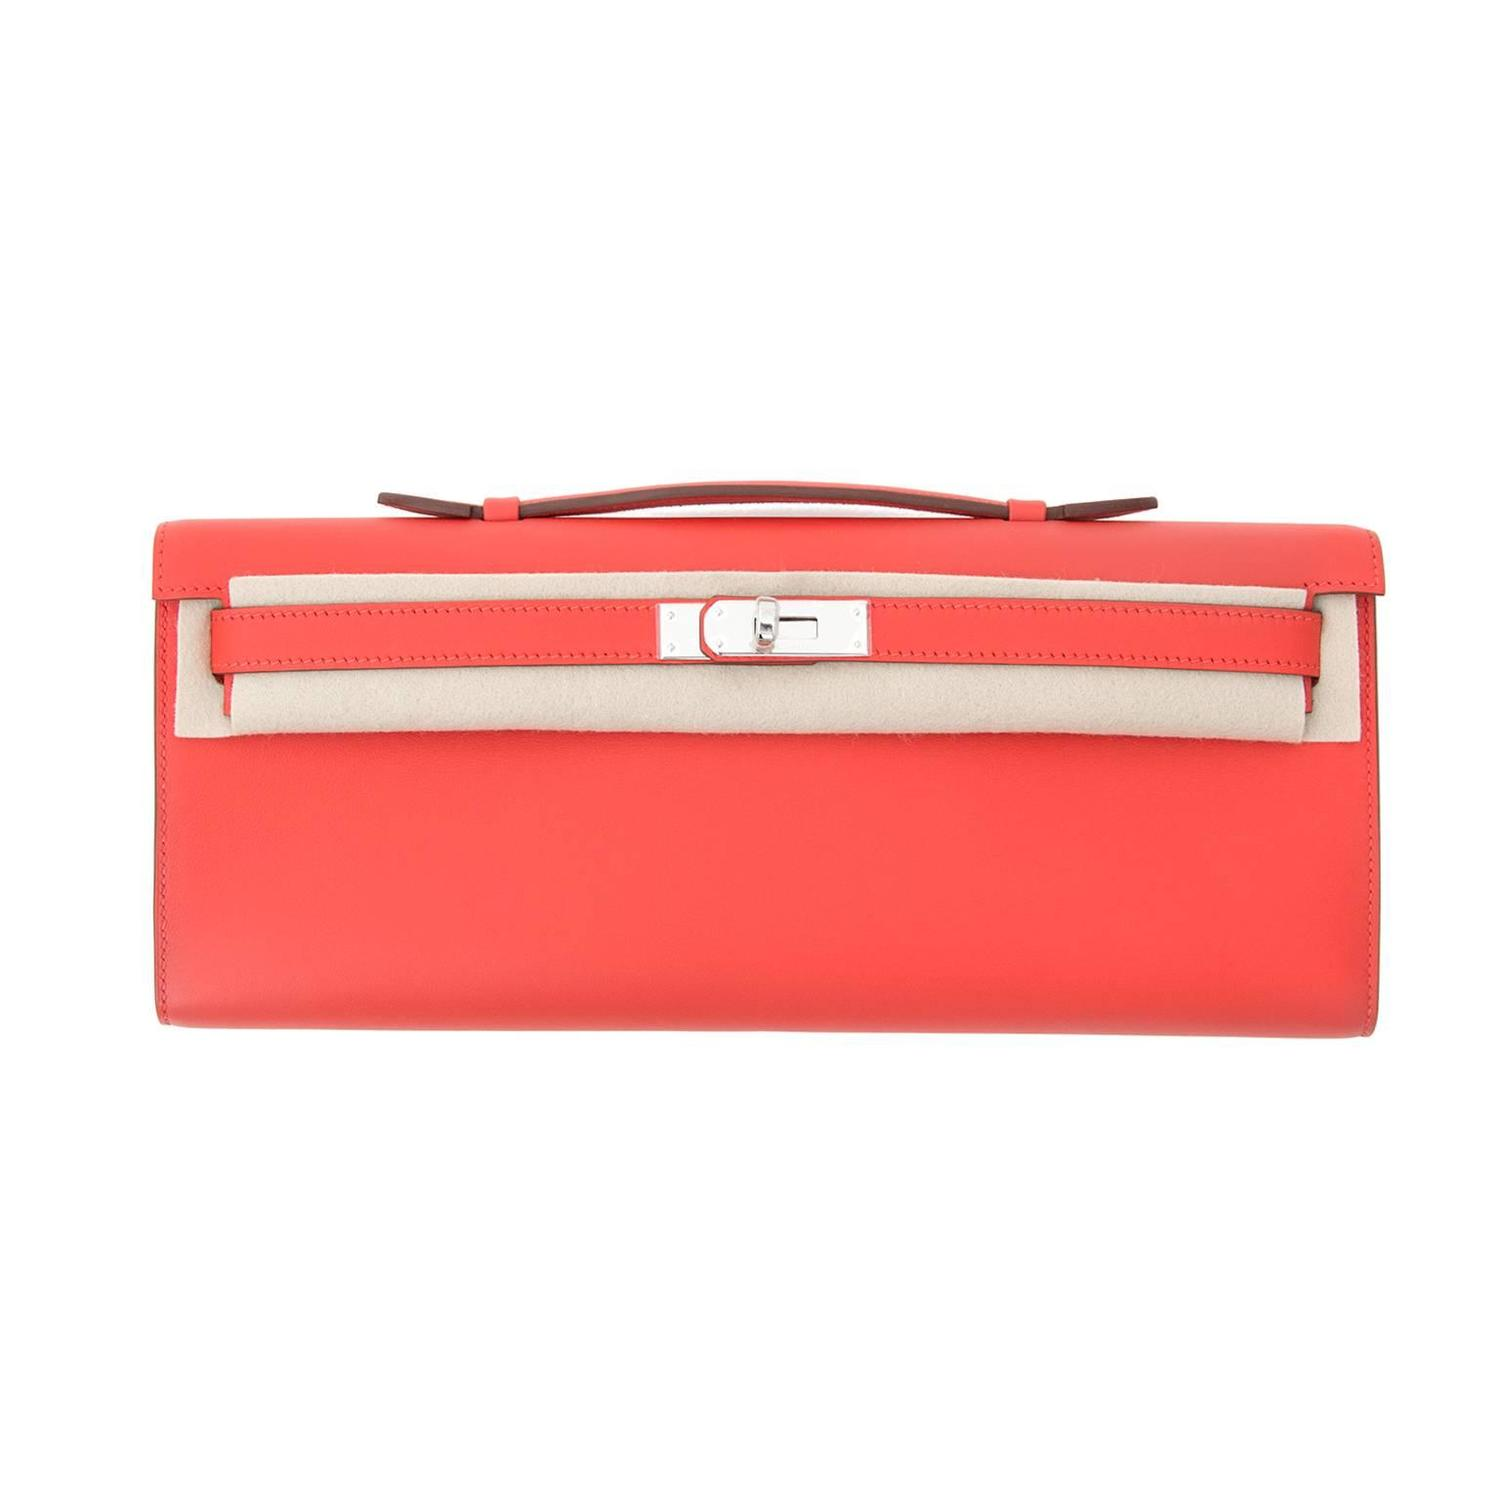 Brand*New Hermes Capucine Pochette Kelly Cut Veau Swift For Sale ...